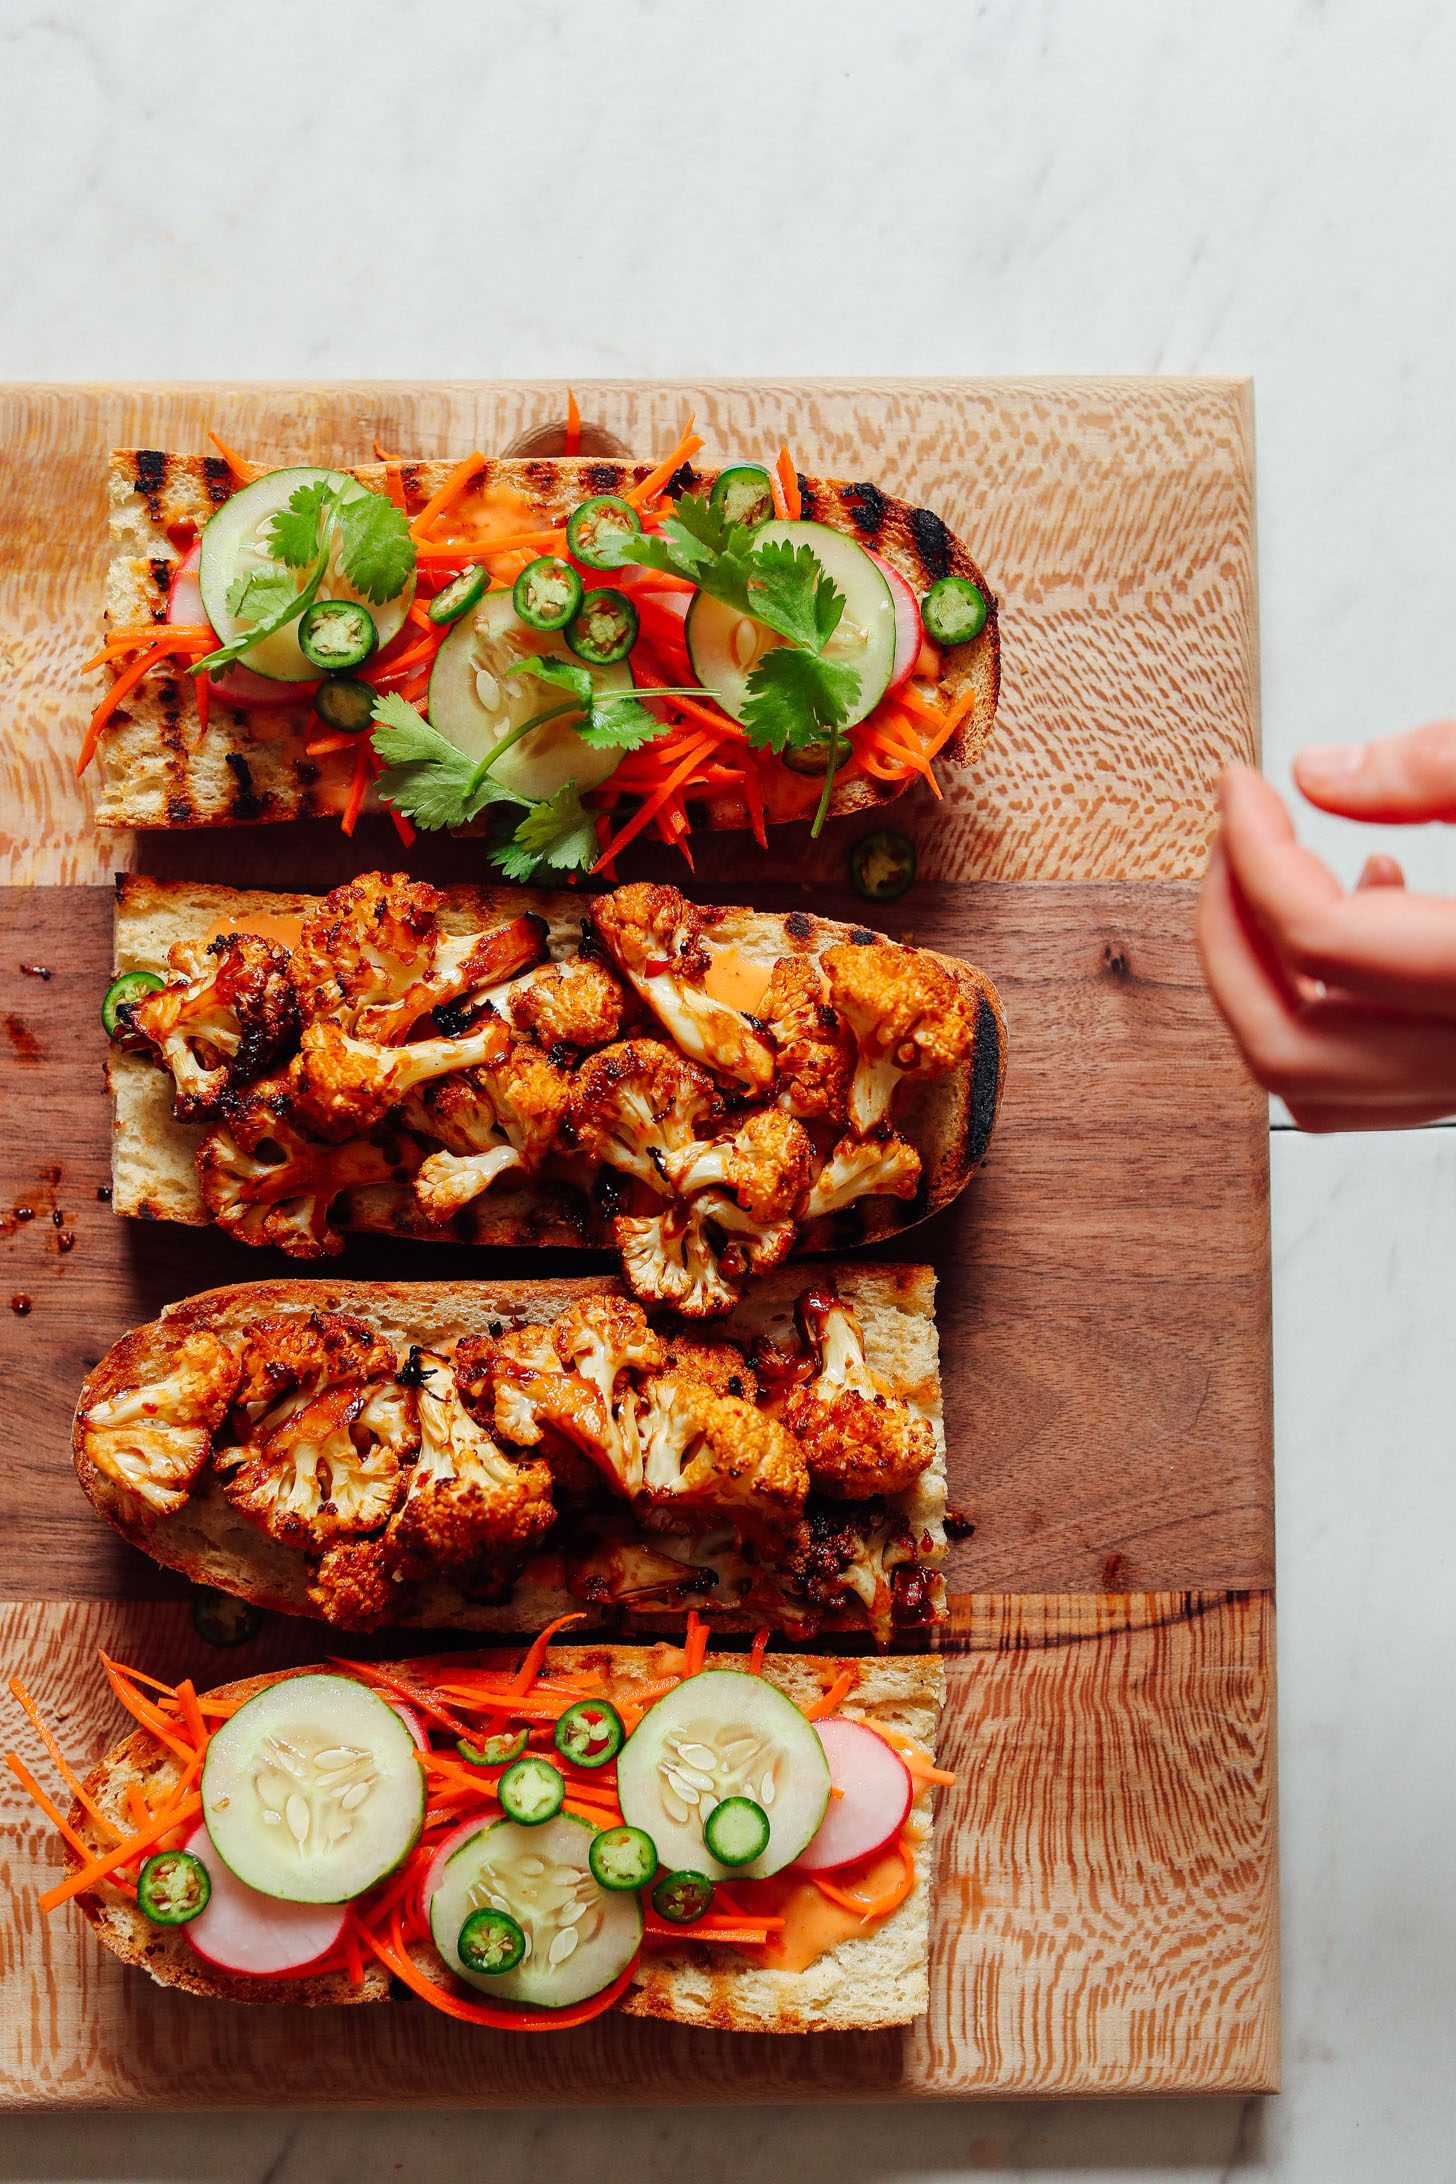 Open-faced Cauliflower Banh Mi sandwiches resting on a wood cutting board